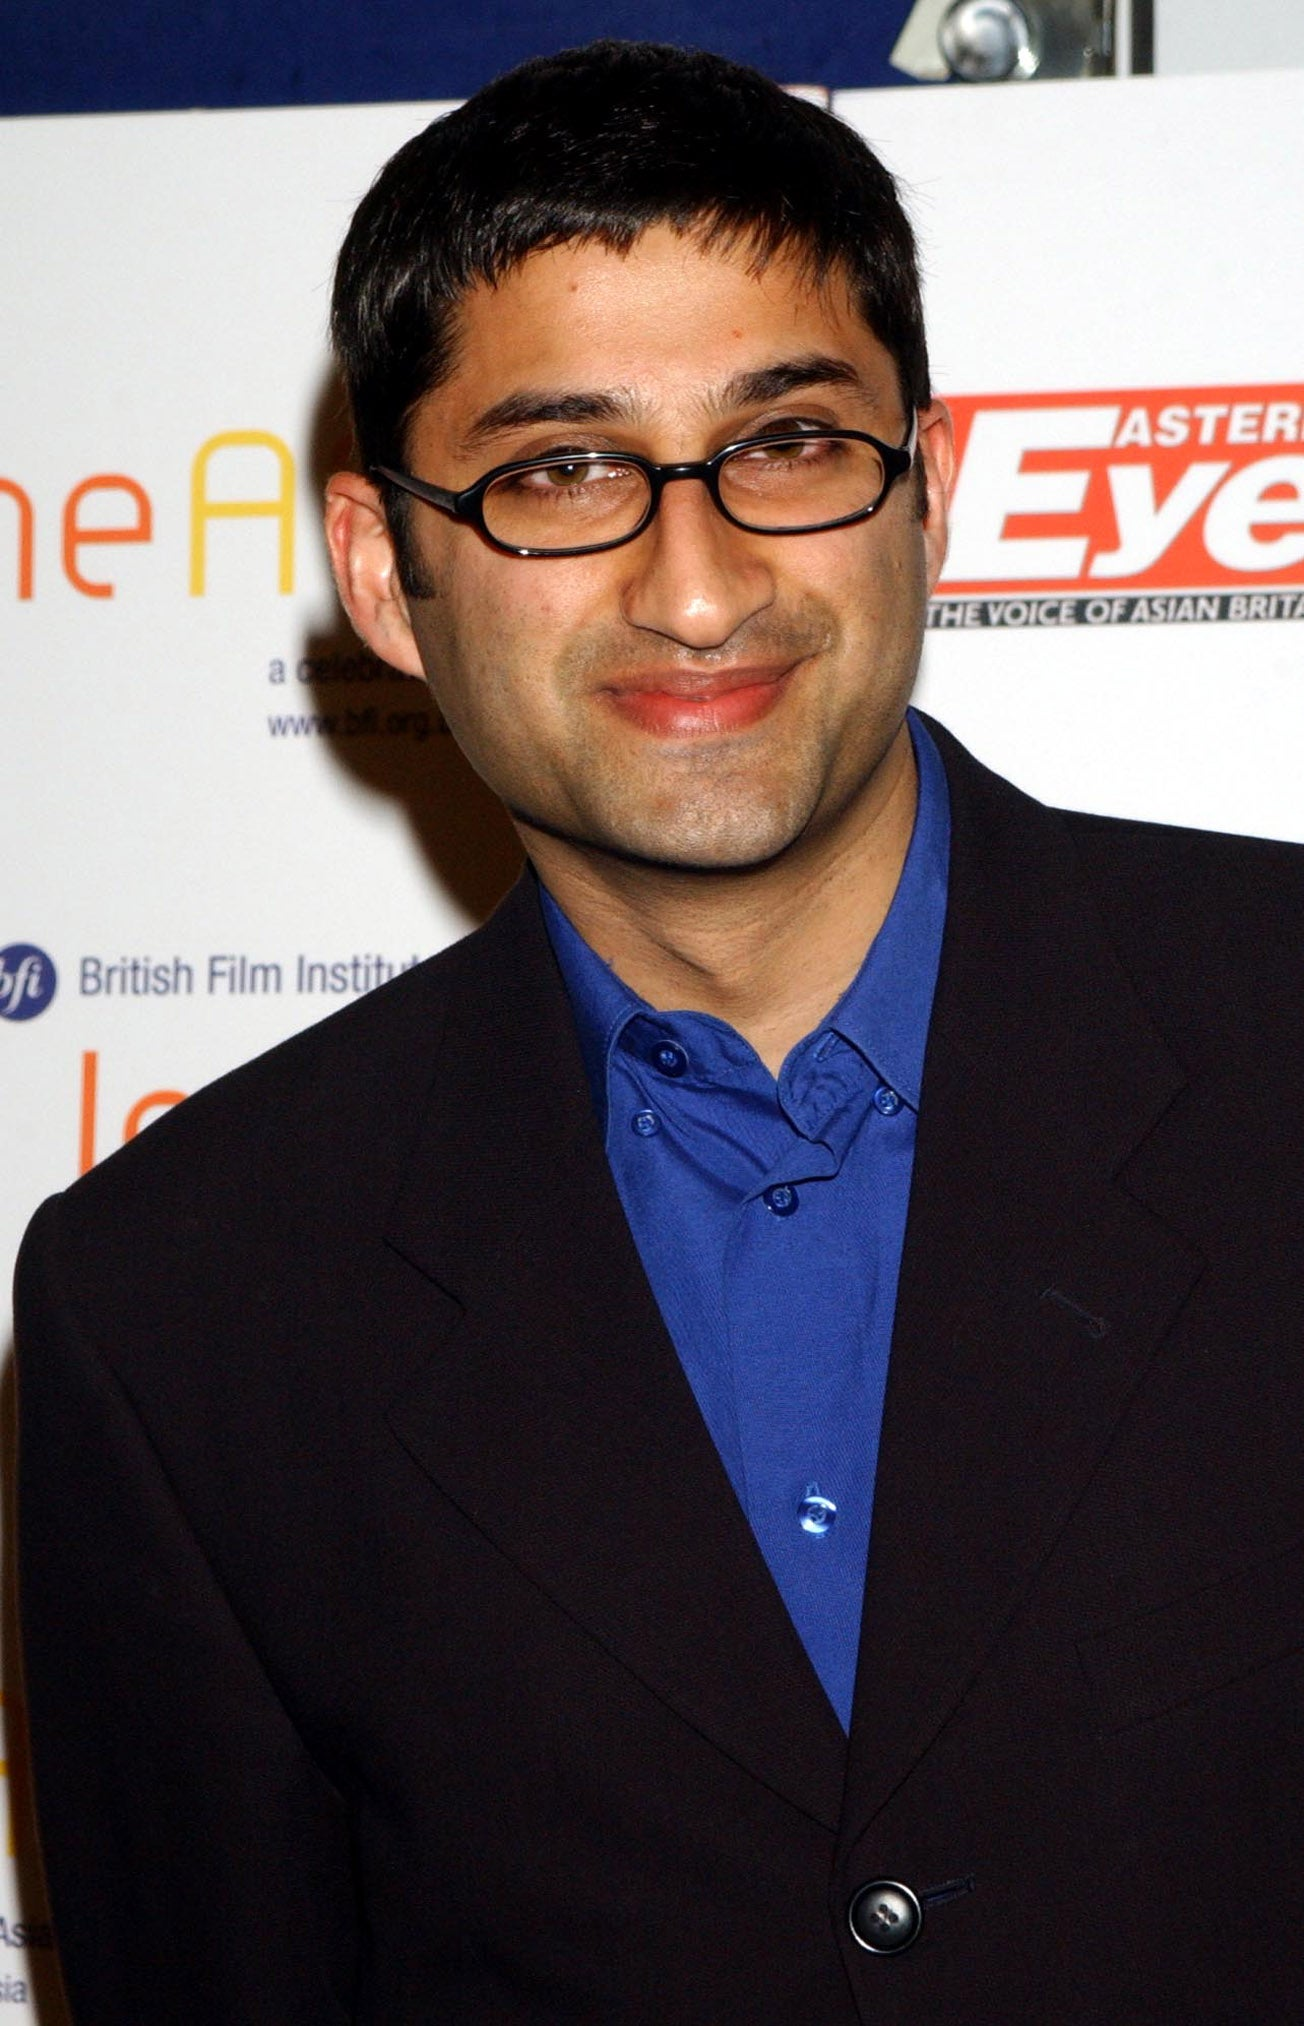 Directro and documentarian Asif Kapadia